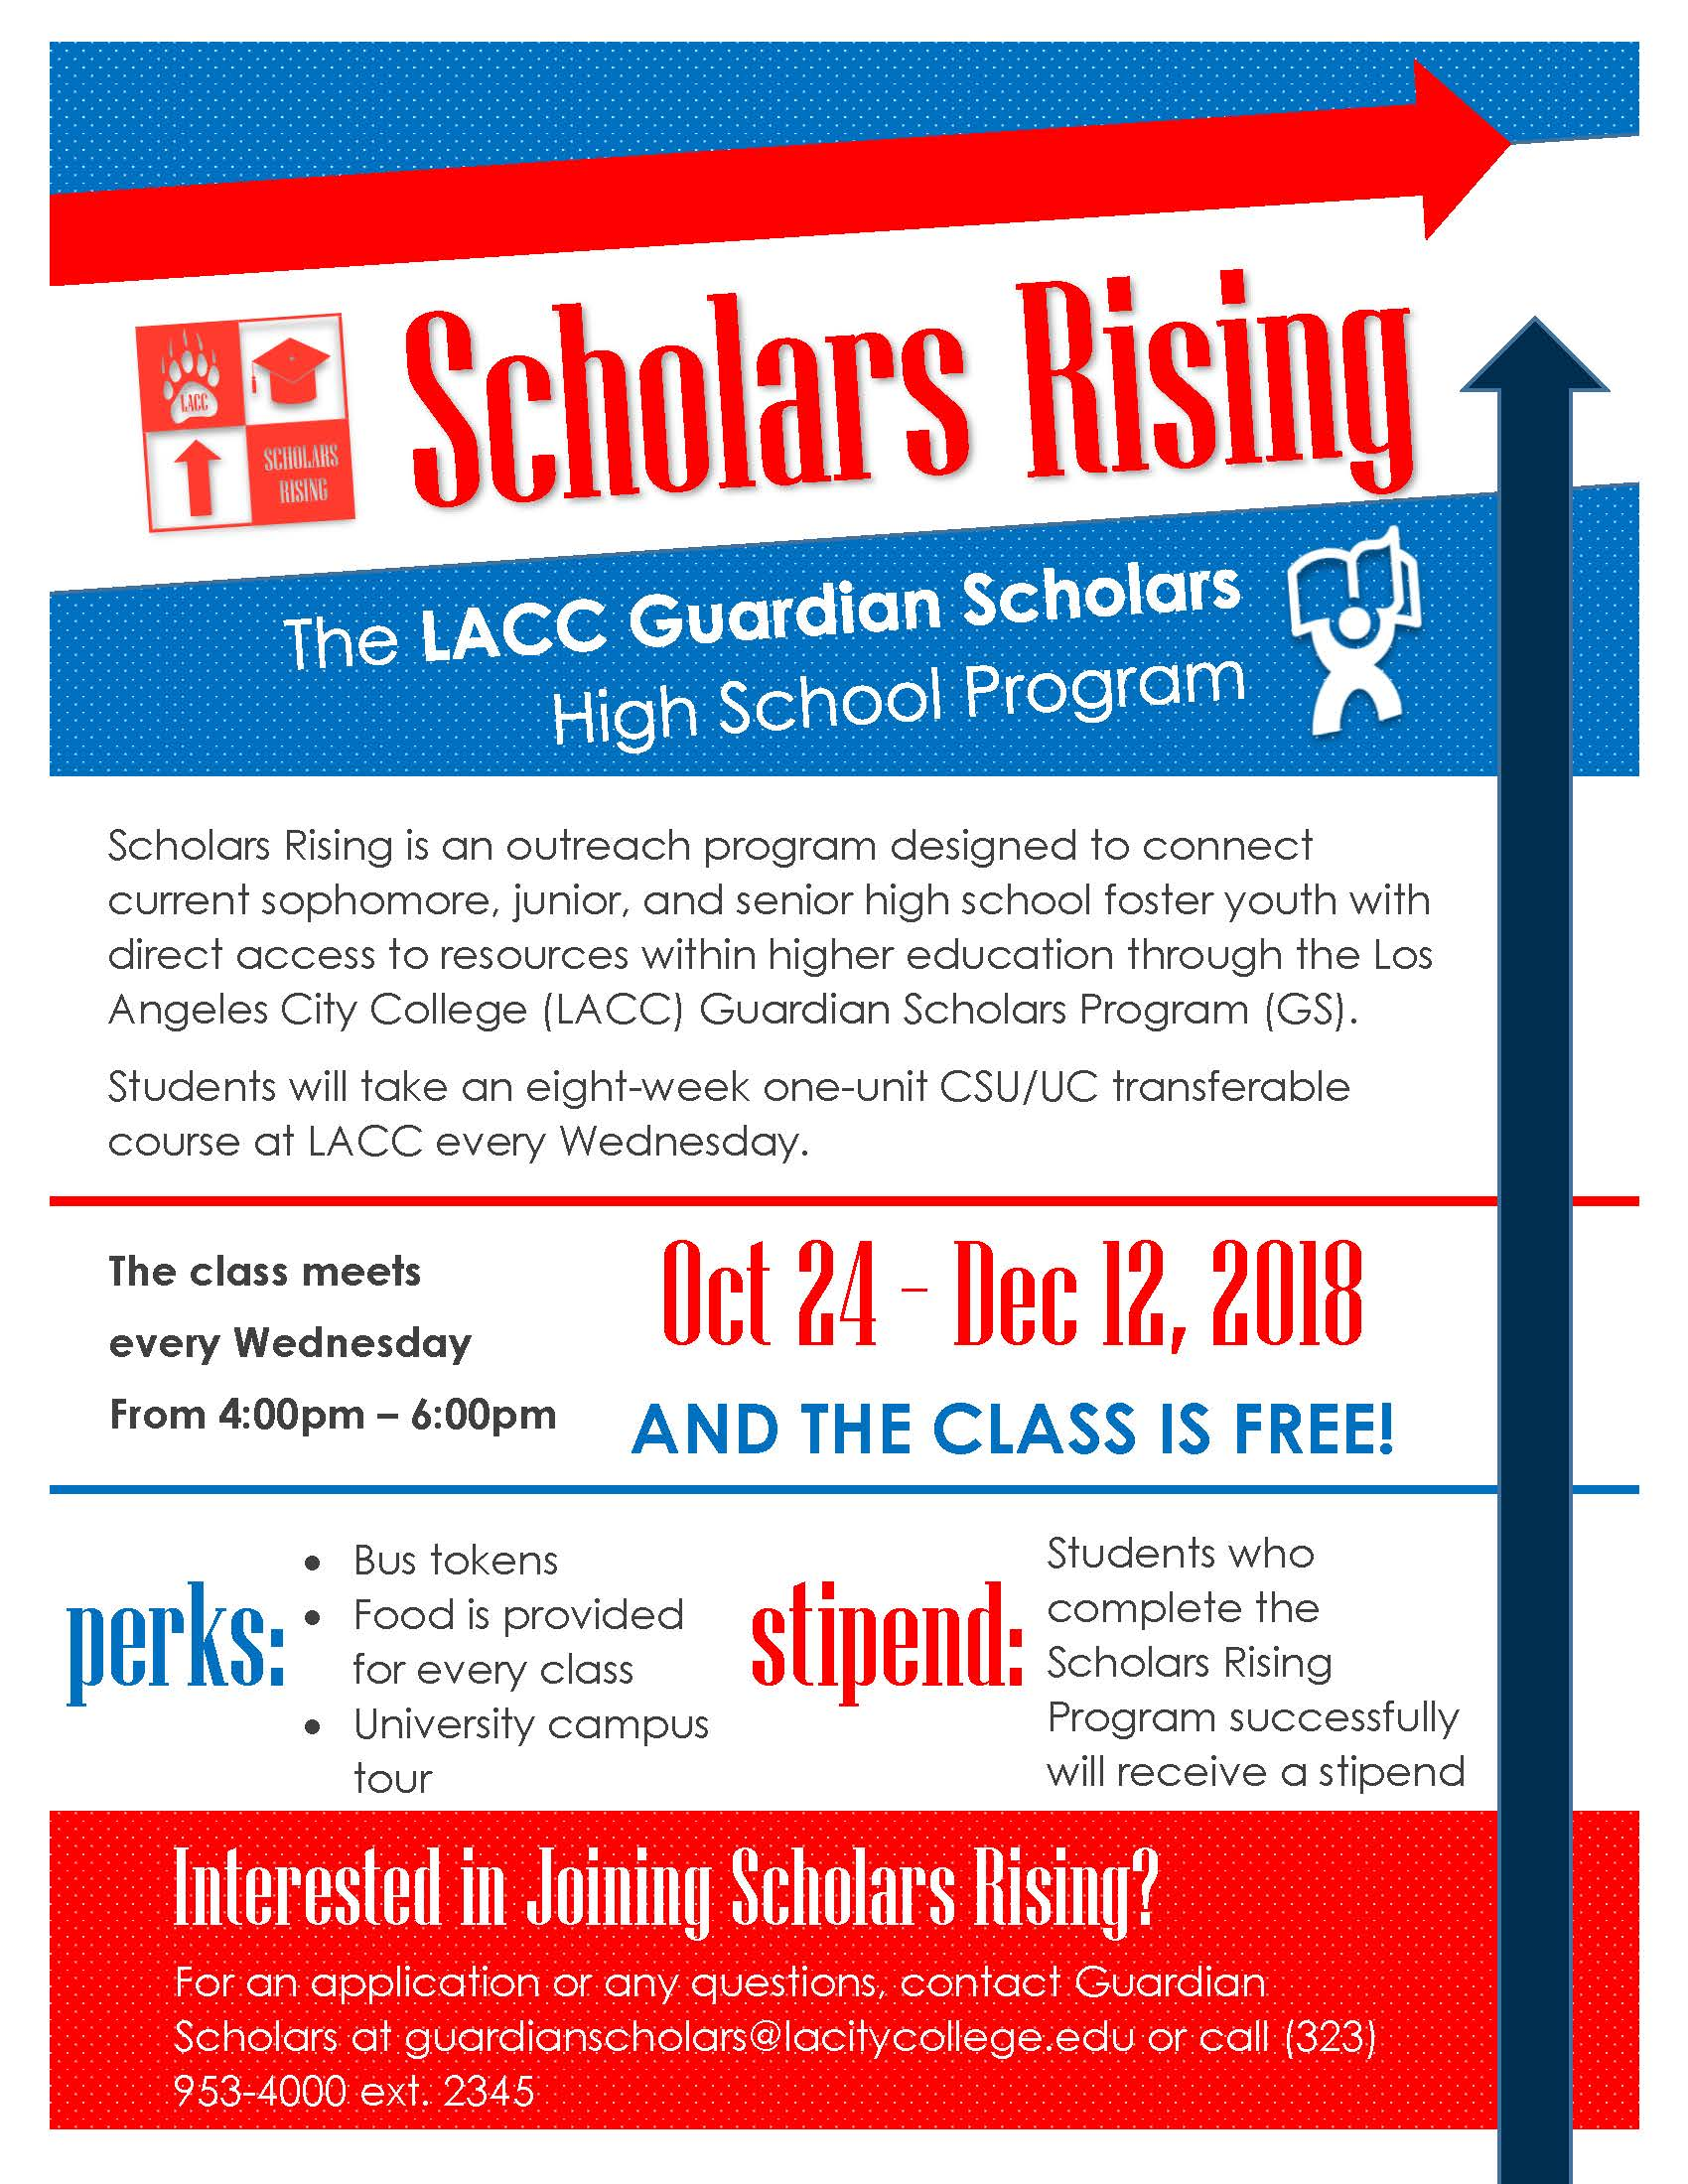 Flyer for Scholars Rising. Program for High School Foster Youth. They can take a college class with us at LACC. This class meets every Wednesday from 4pm to 6pm starting October 24 and ending December 12, 2018. There are bus tokens and food, as well as a stipend for those who complete the program.